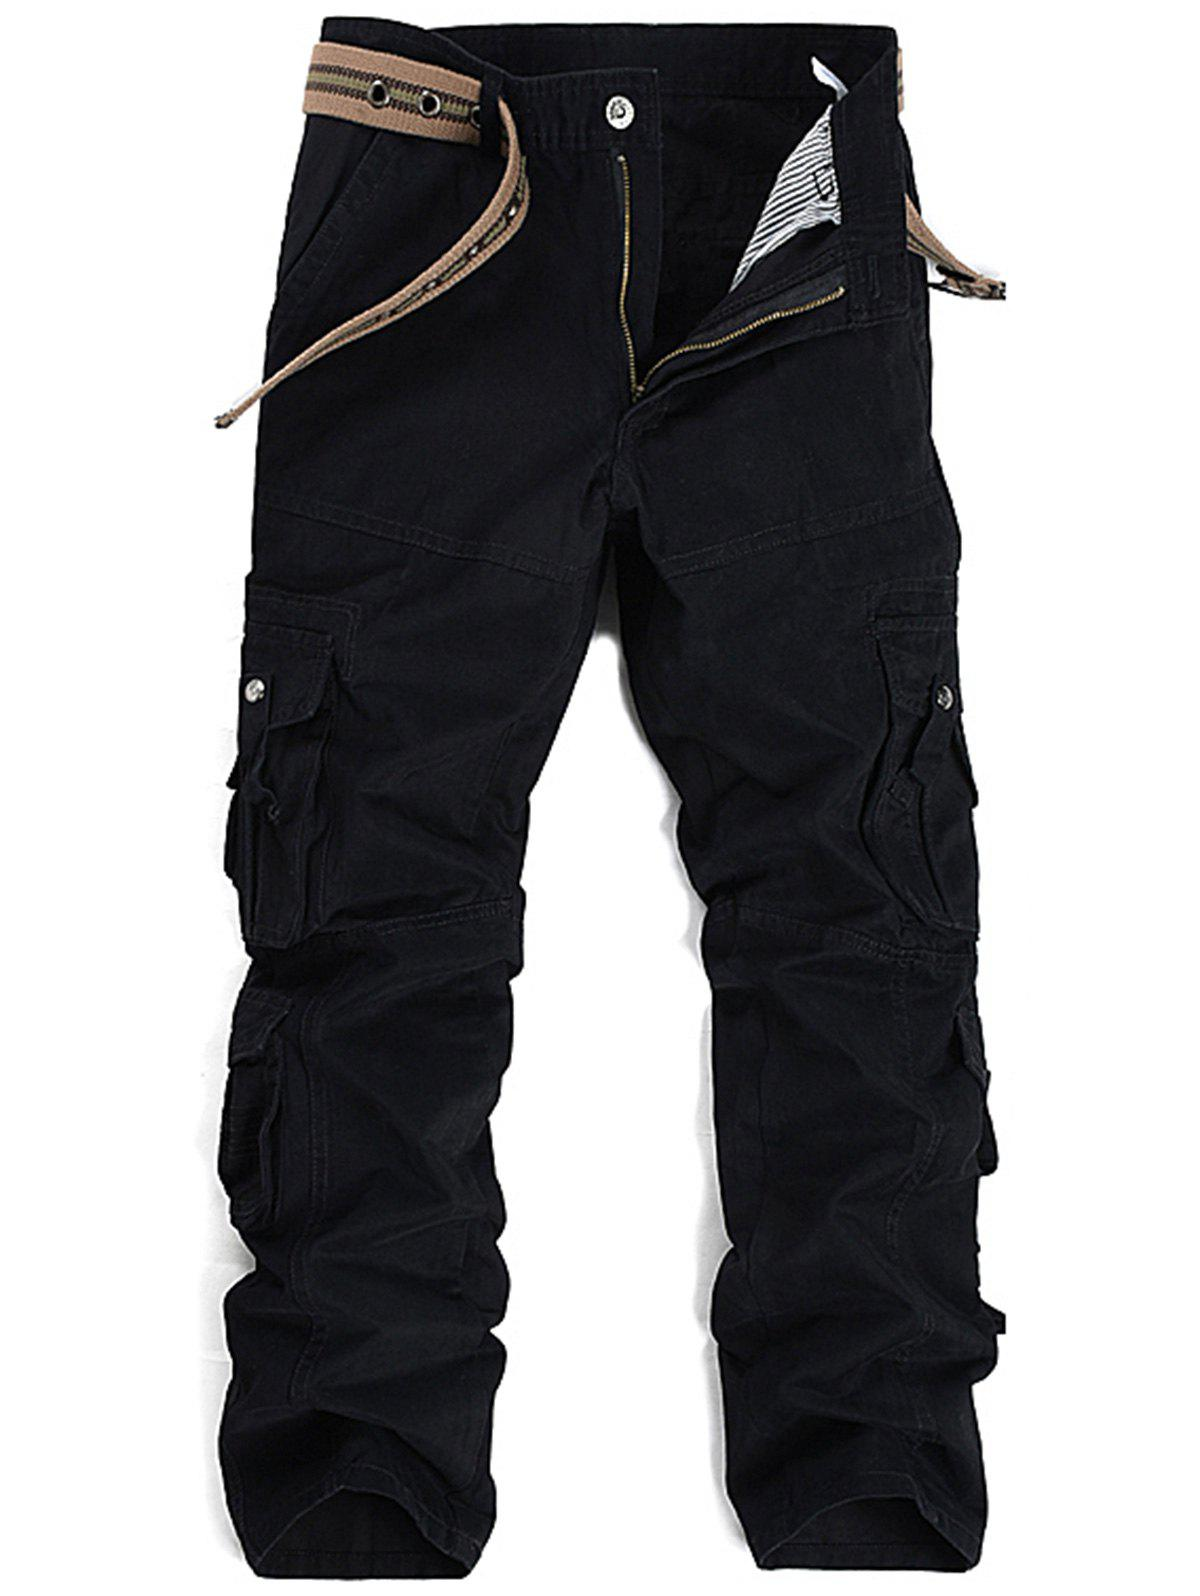 Pleat Pockets Straight Leg Cargo Pants - BLACK 34